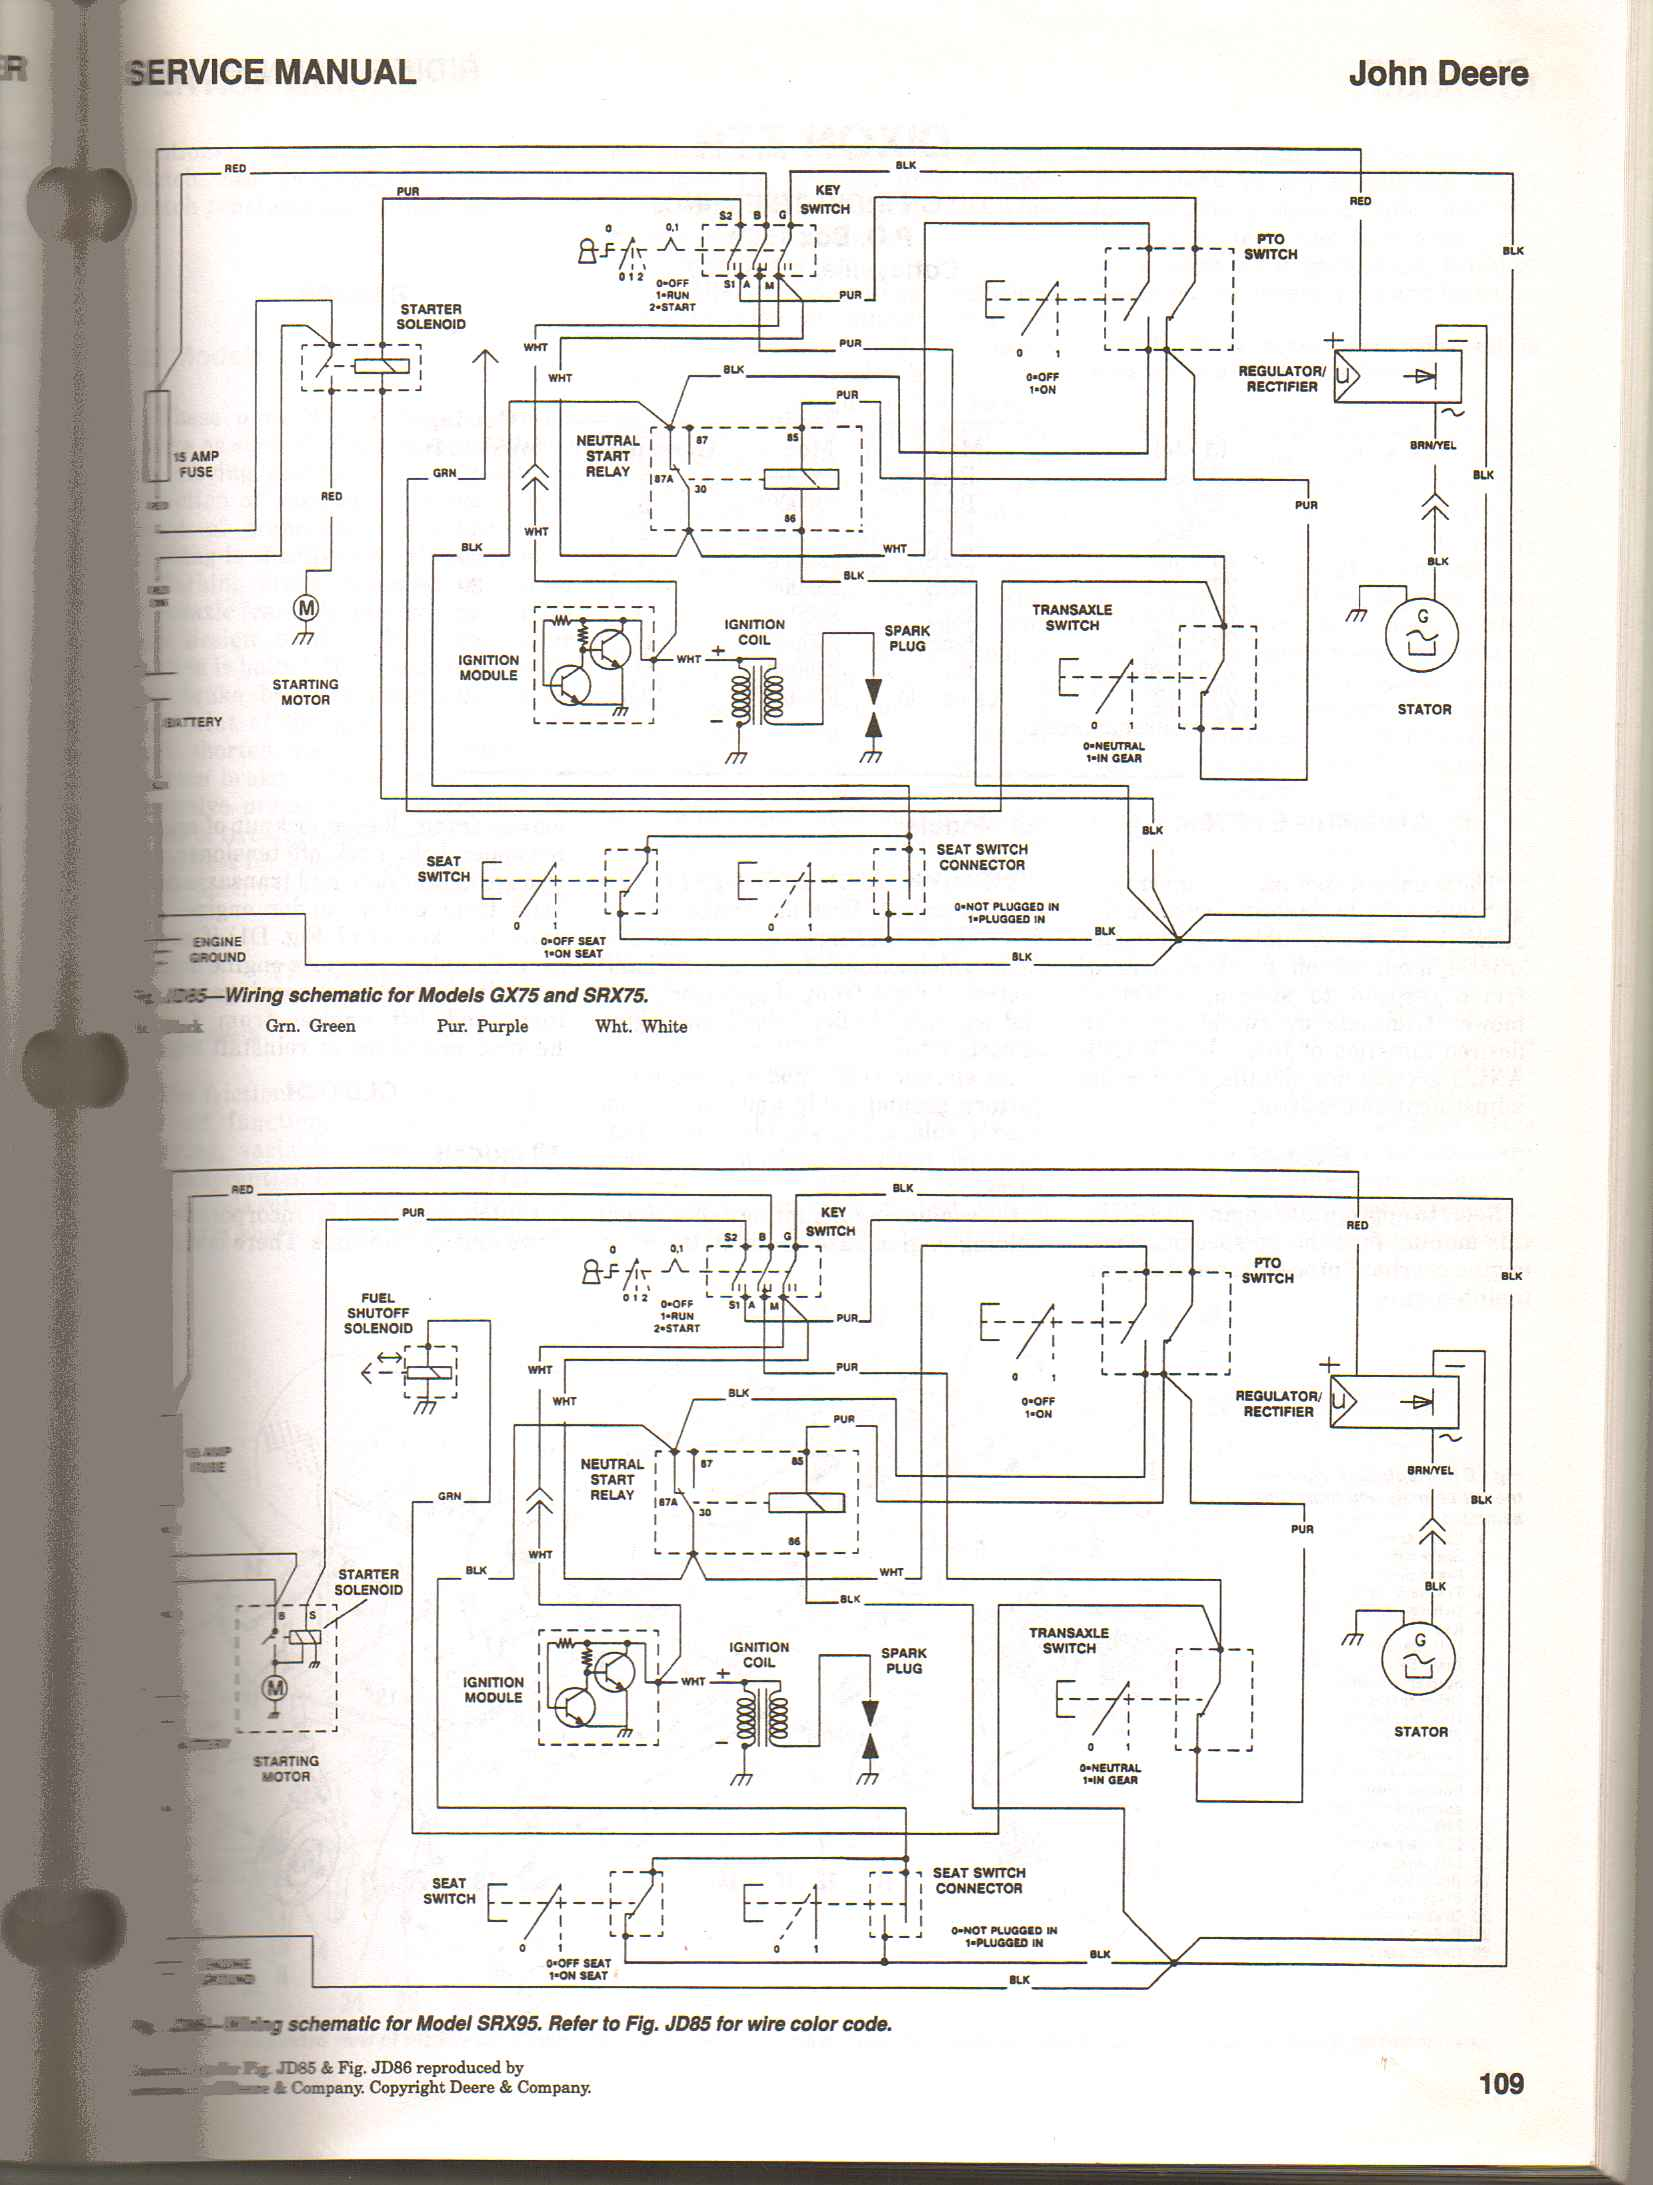 john deere gx wiring diagram john wiring diagrams i have a rx75 john deere riding mower it will not start replaced